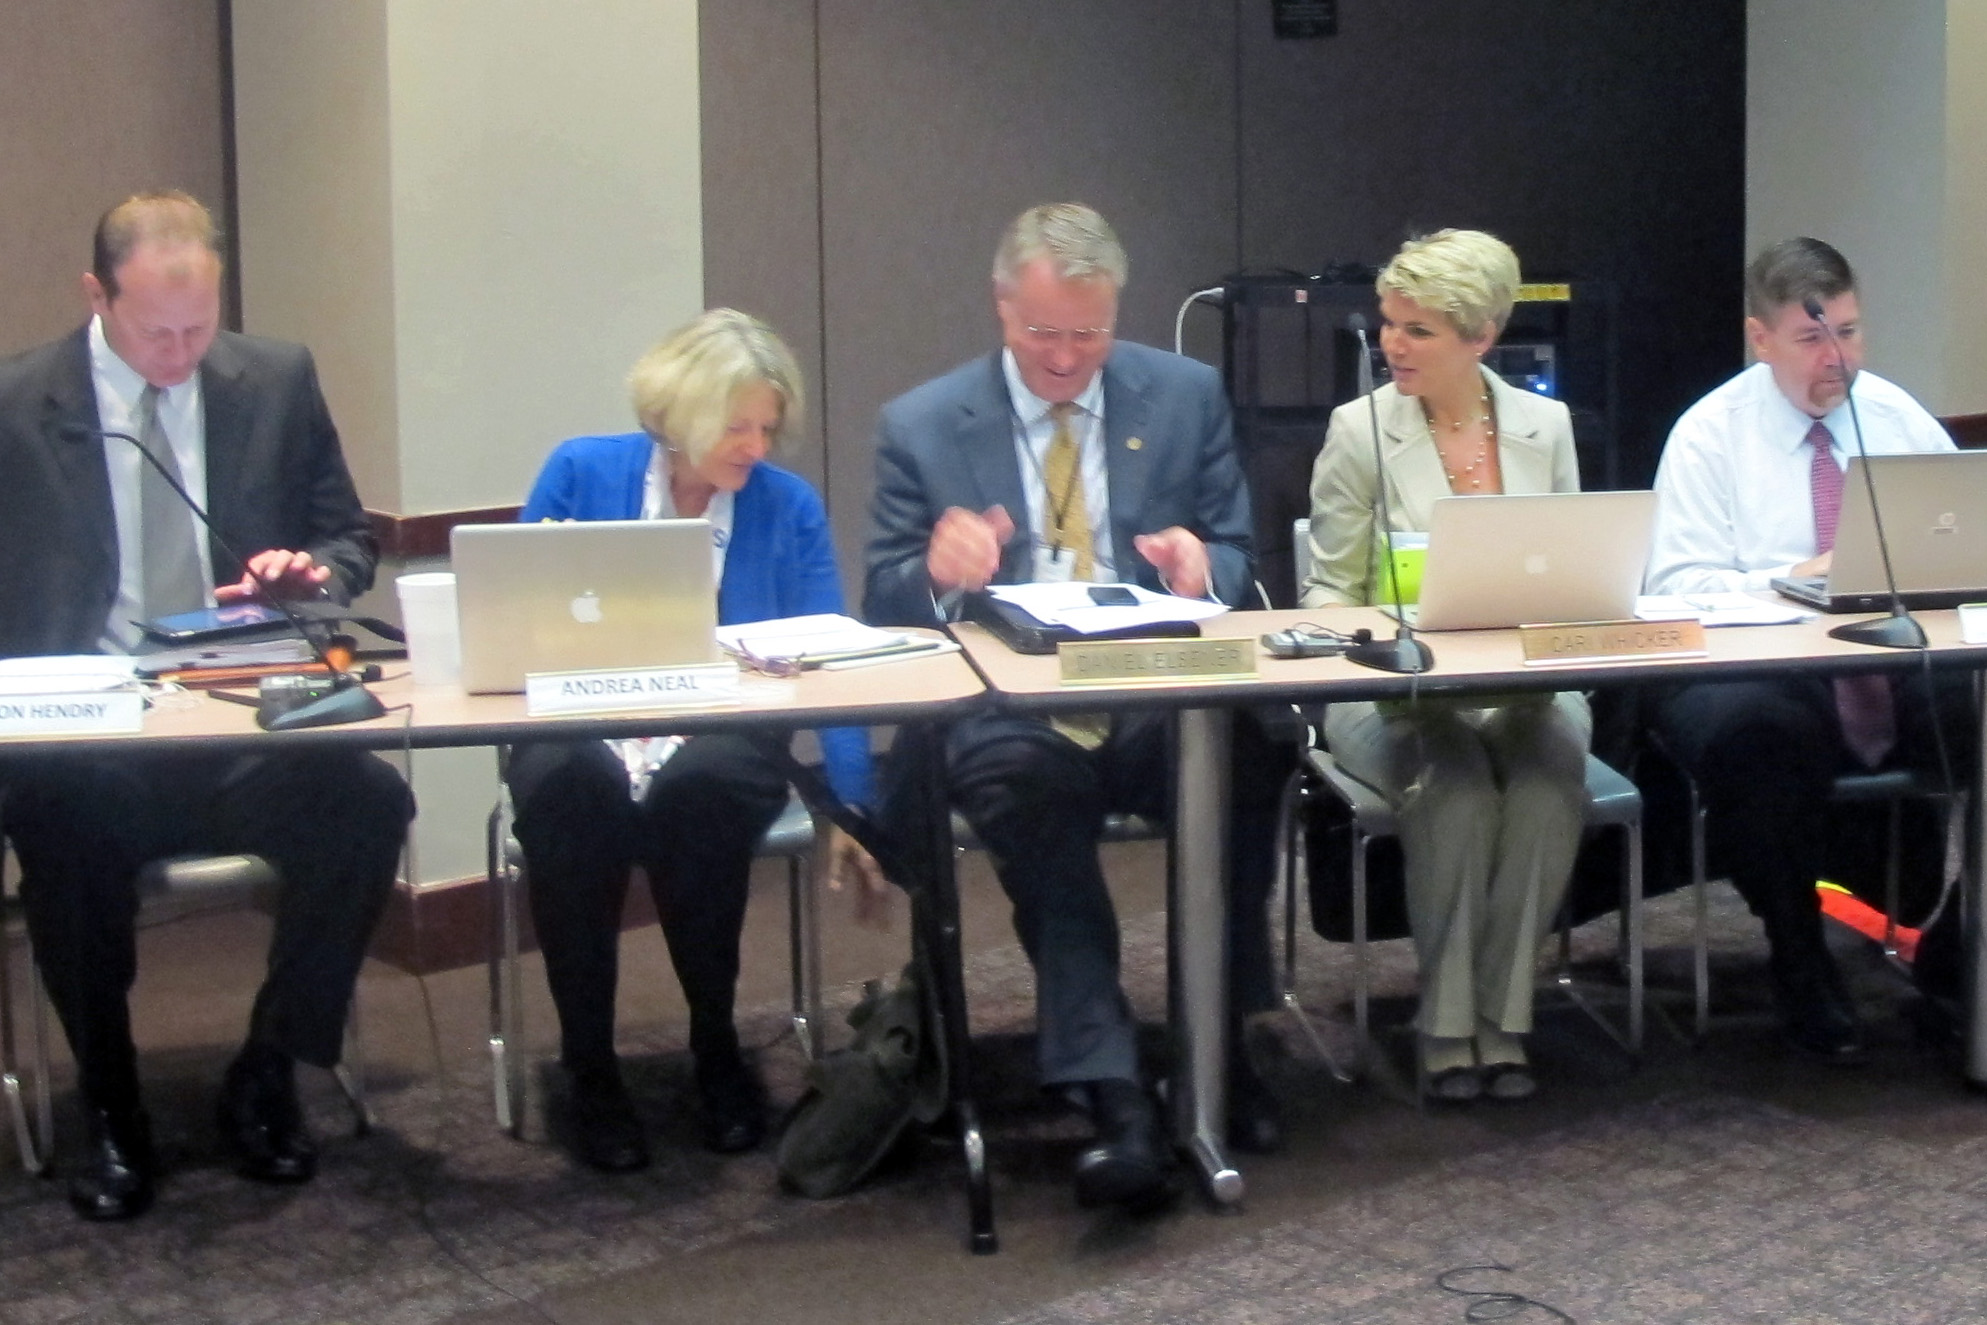 State Board of Education members Gordon Hendry, left, Andrea Neal, Dan Elsener, Cari Whicker and Brad Oliver listen to a presentation during the October meeting.